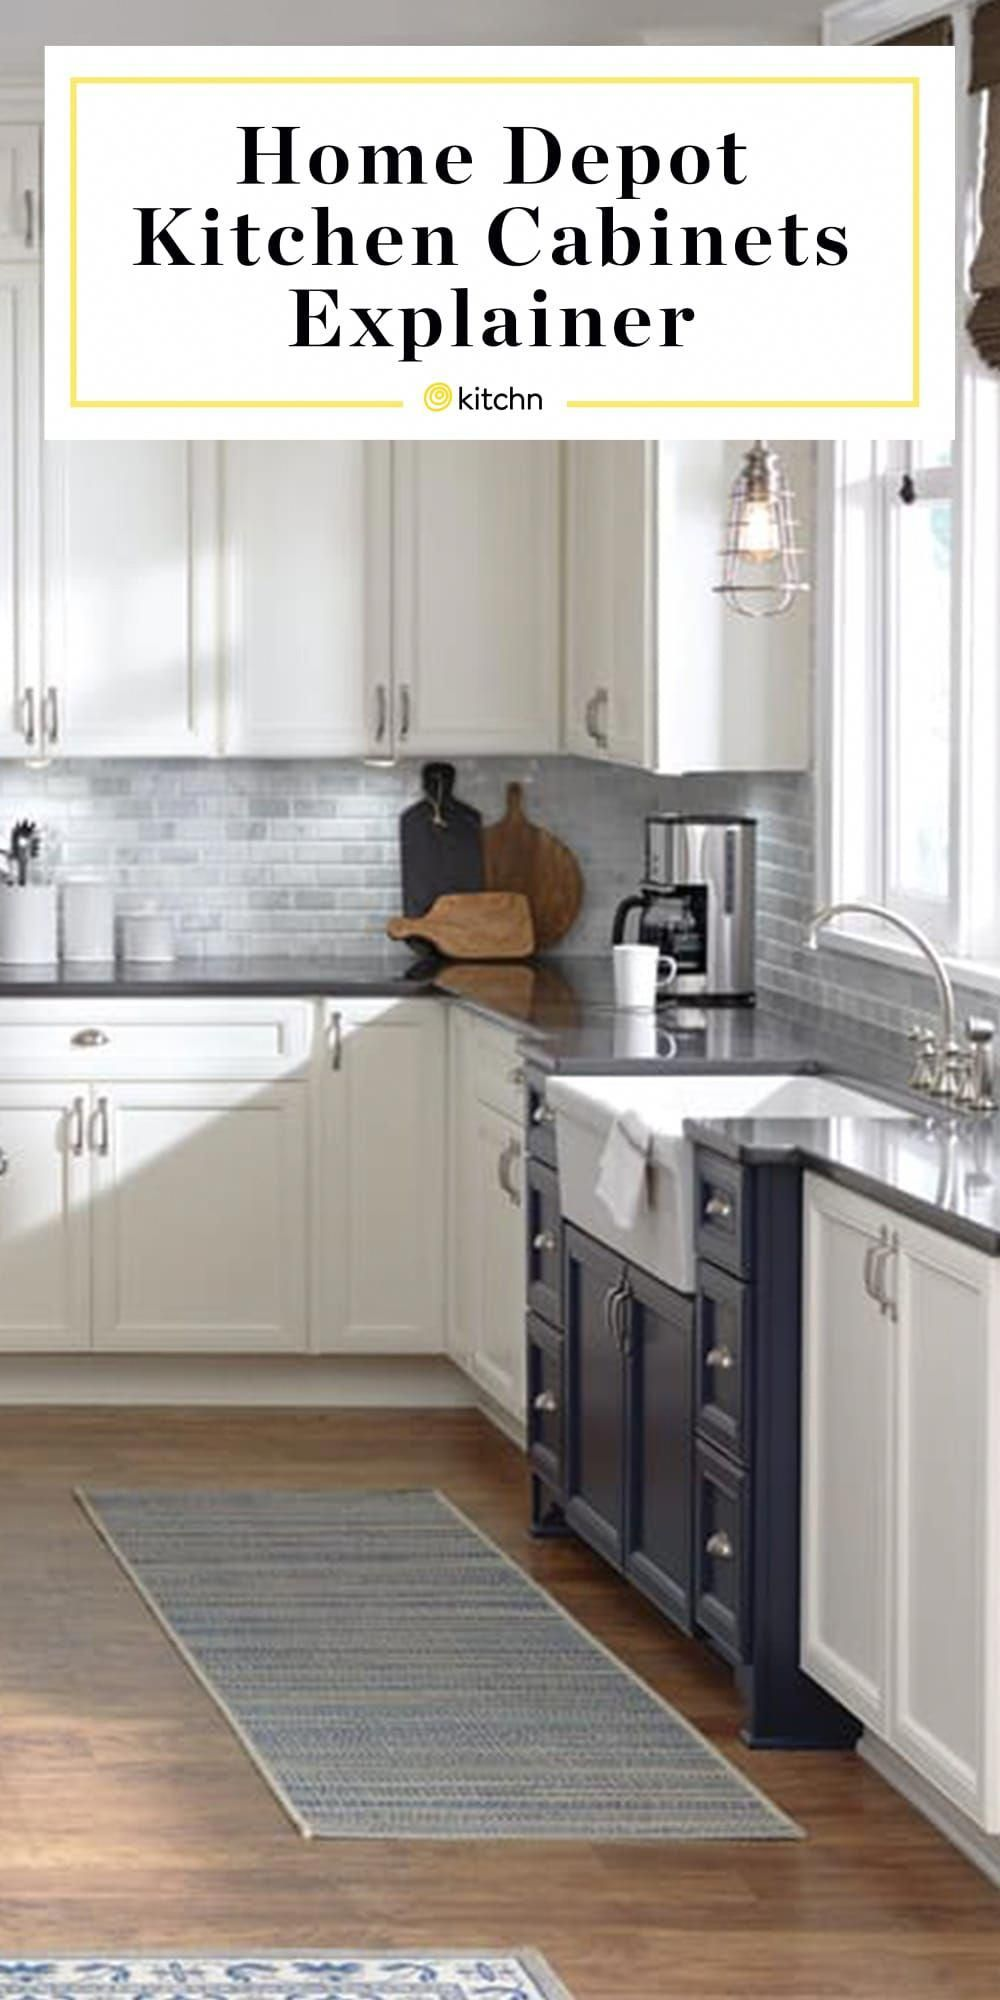 Review This Post Today Which Chats Around Kitchen Cabinet Organization In 2020 Home Depot Kitchen Kitchen Cabinets Home Depot Cheap Kitchen Cabinets